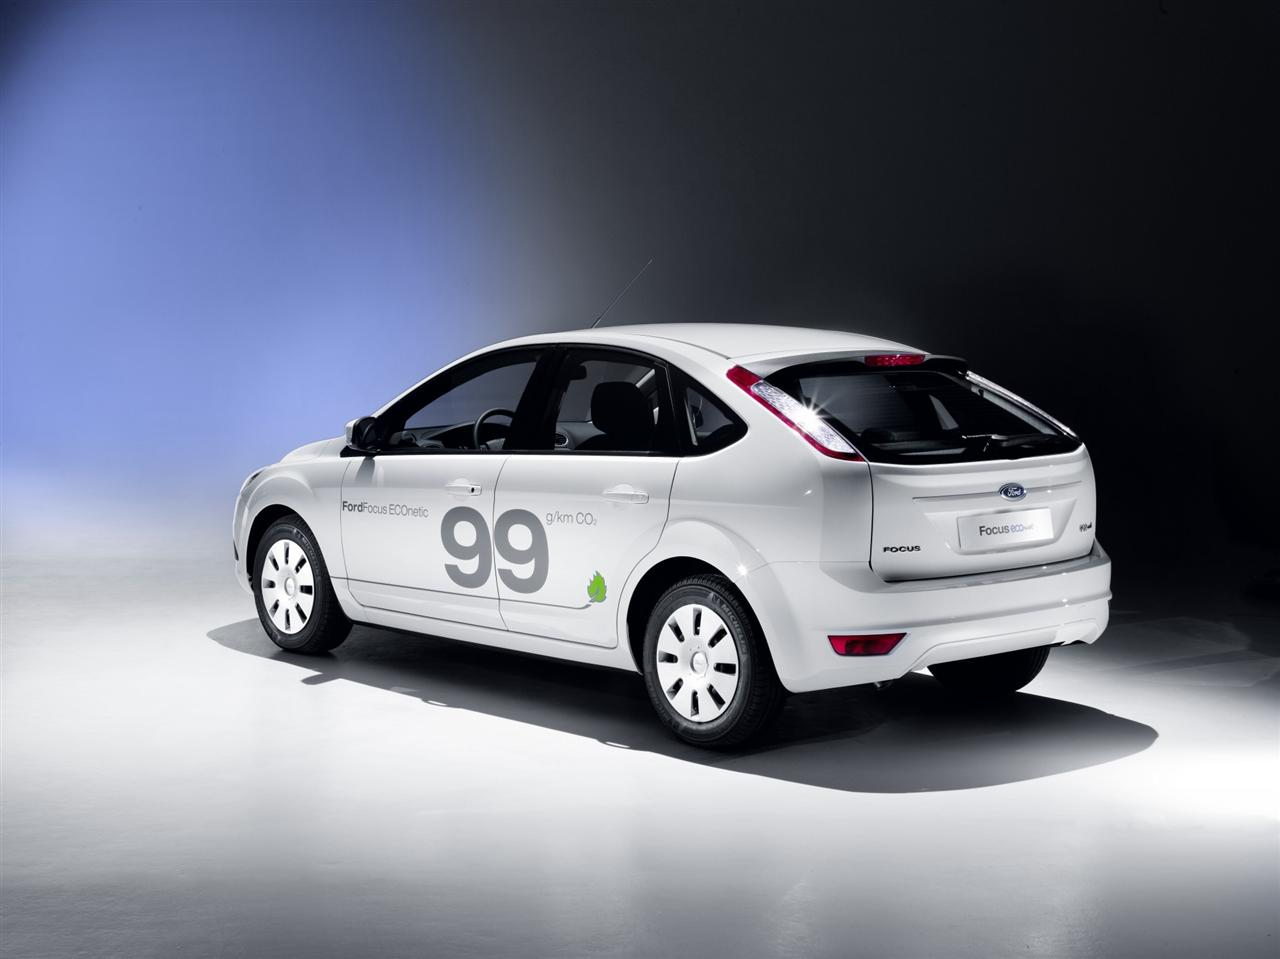 2010 Ford Focus Econetic Image